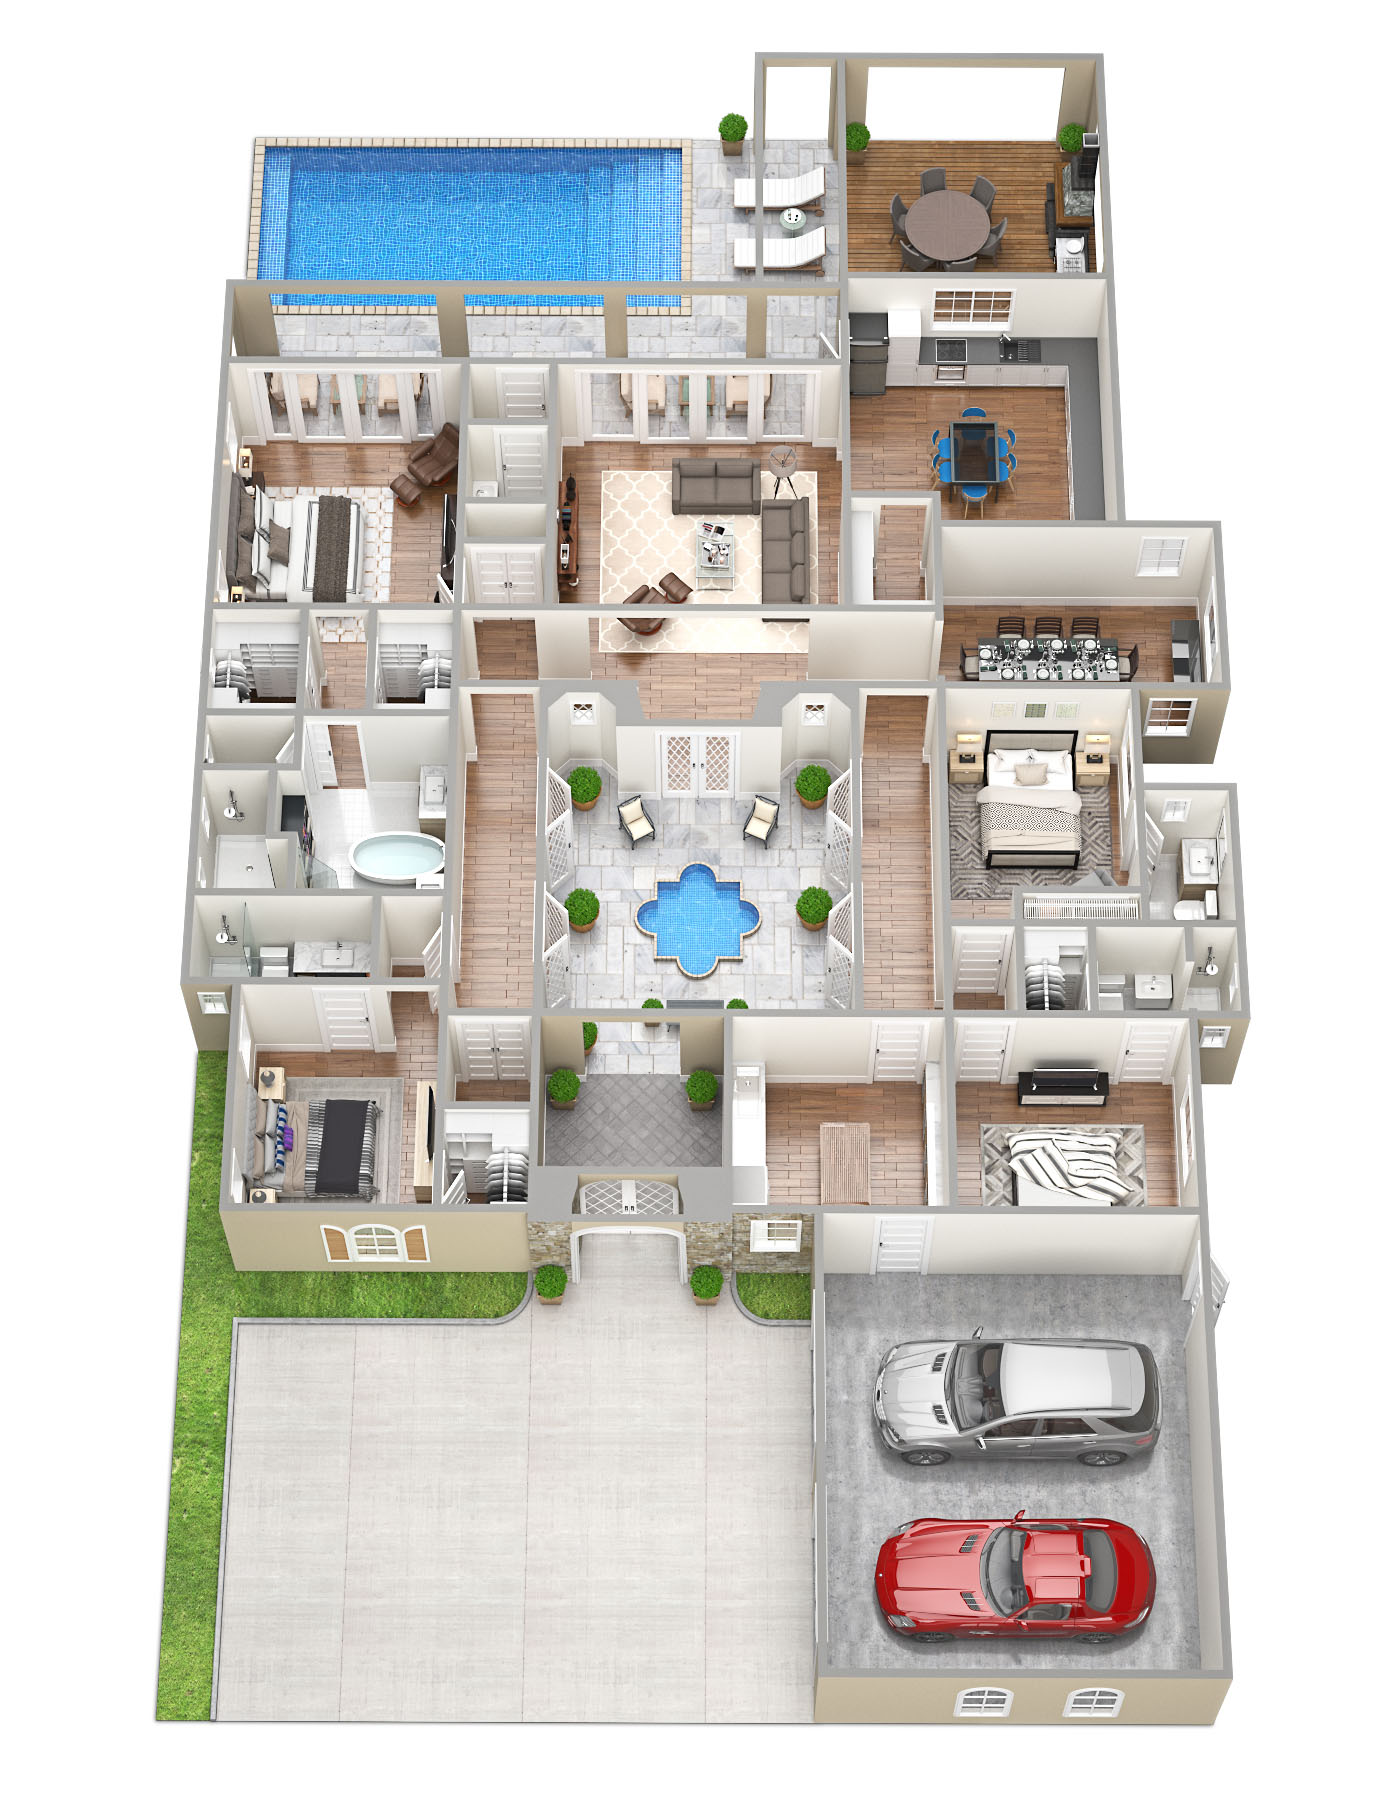 3D Floorplans for the Sawyer Sound Property  Tsymbals Design